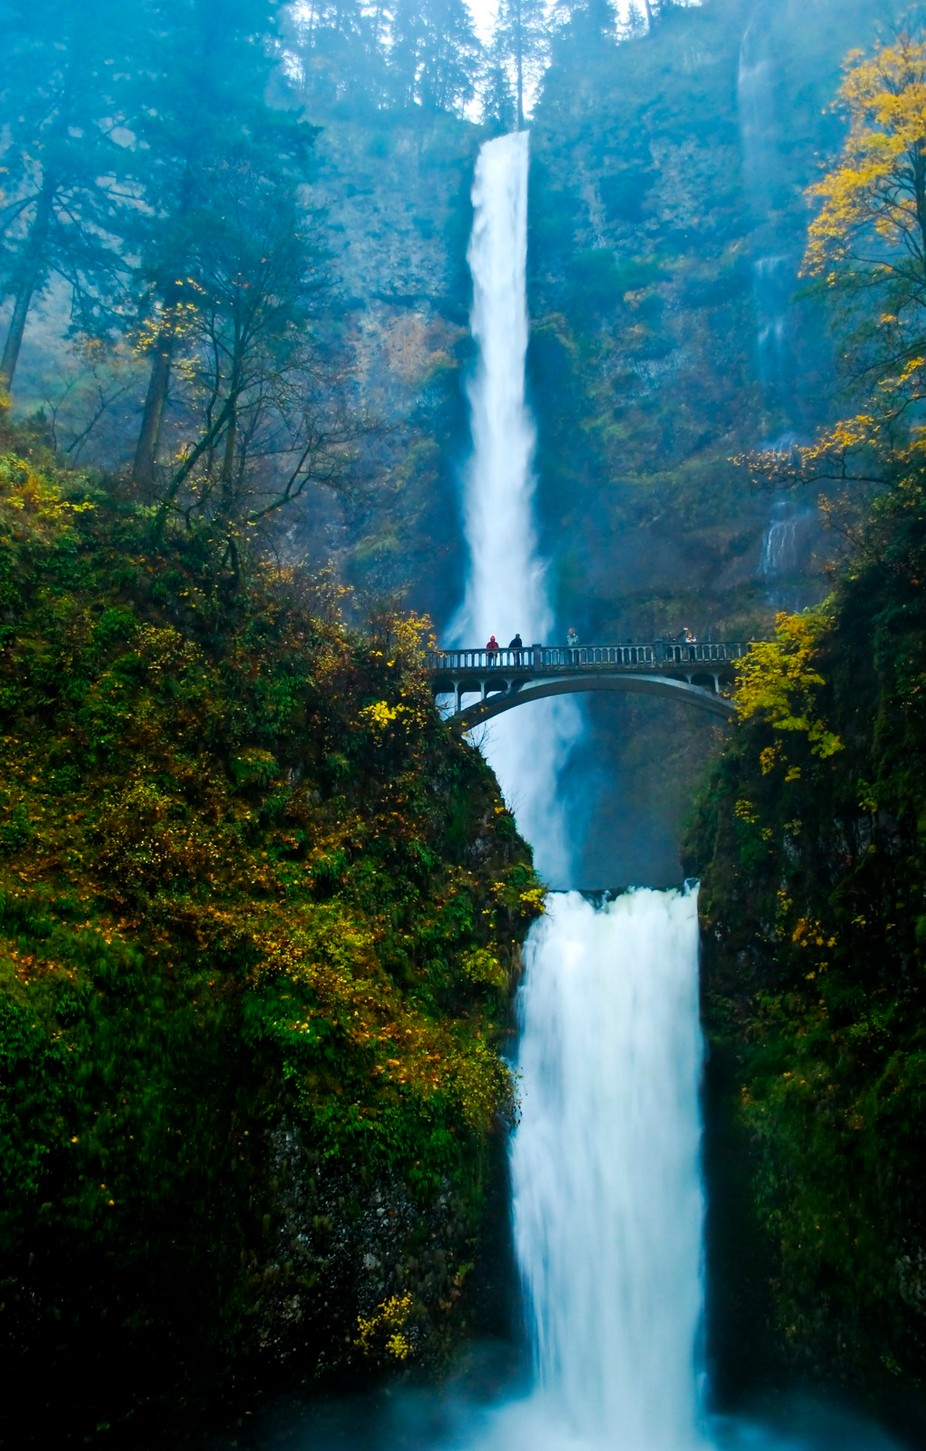 Multnomah Falls by sockeblu2 - People And Waterfalls Photo Contest